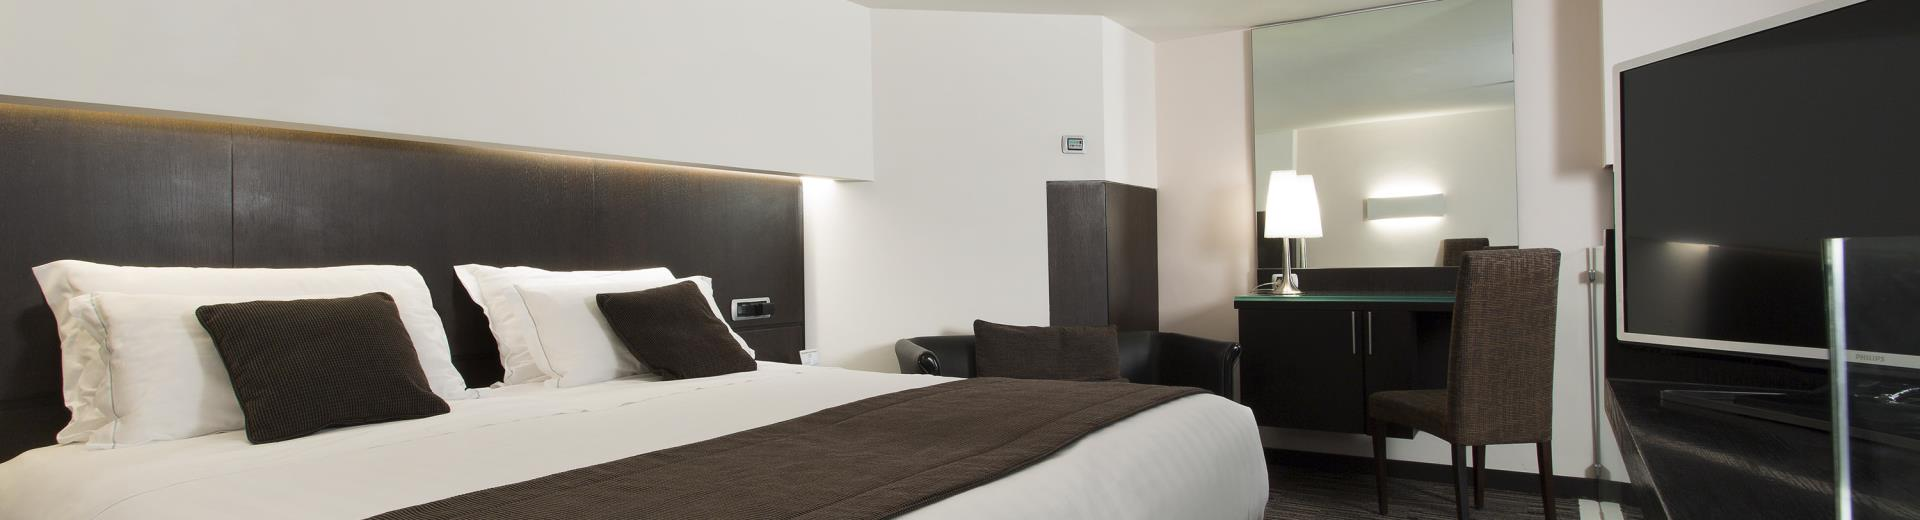 Junior Suite-Best Western Plus Hotel Universo